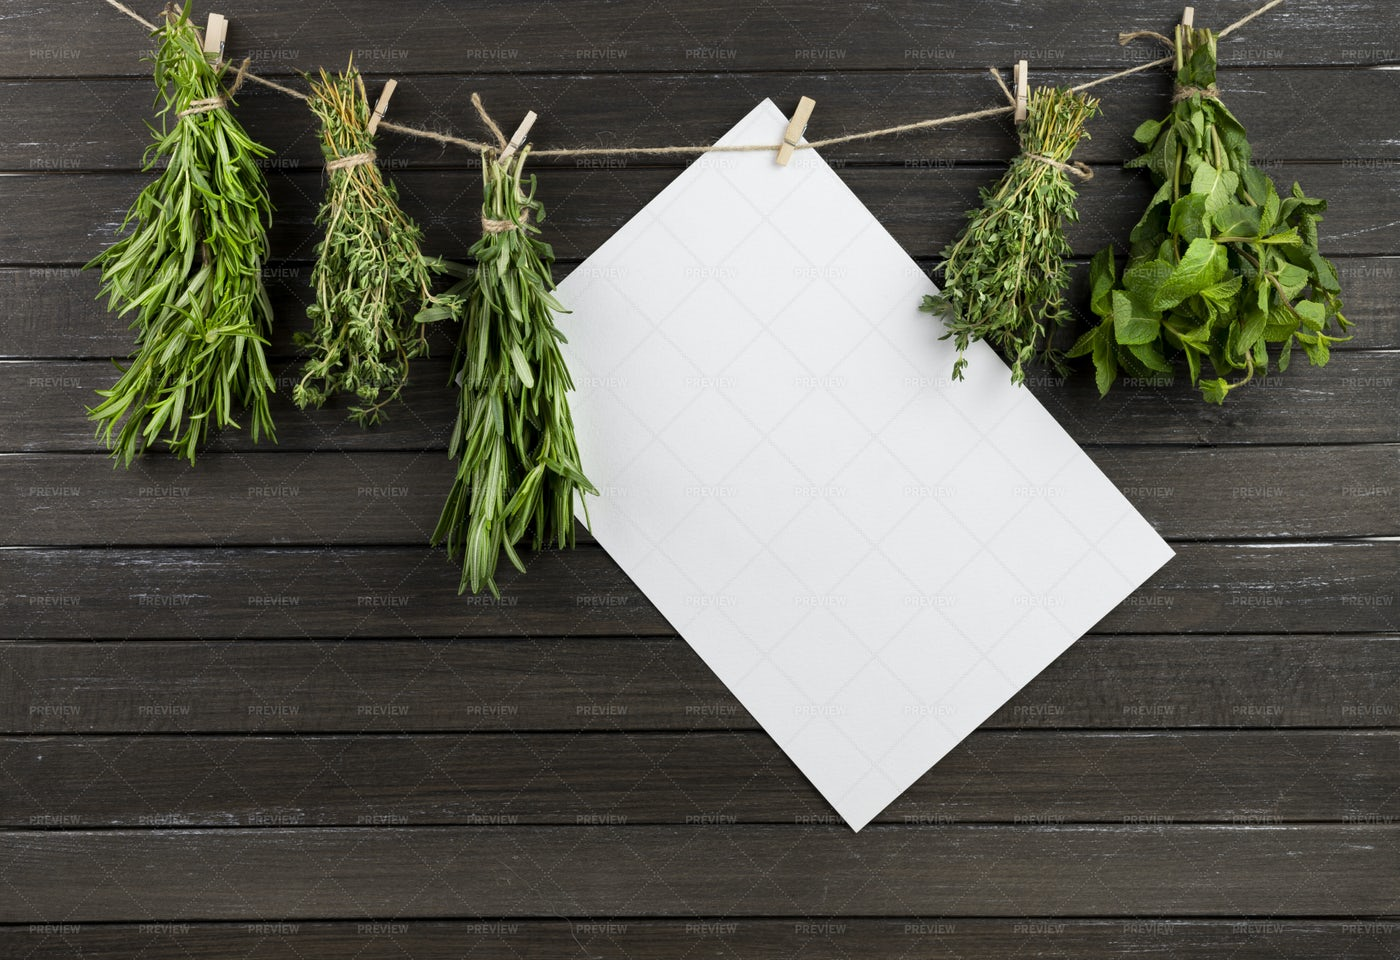 Herbs Drying On A Rope: Stock Photos